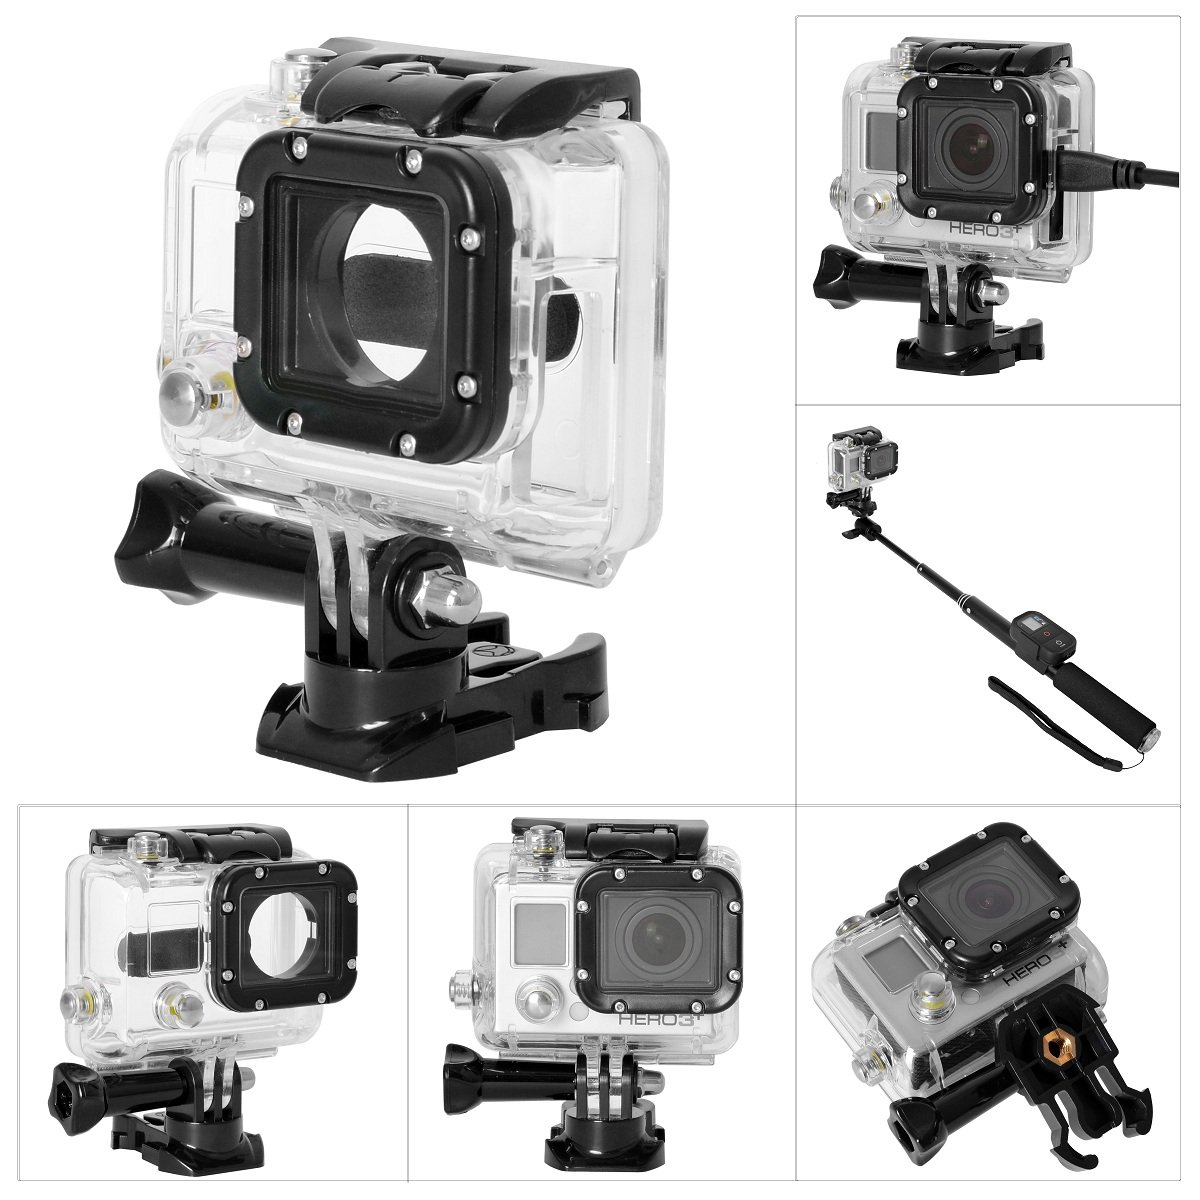 Fantaseal Direct-mount Side Open Housing for GoPro Housing GoPro Protective Case GoPro Shell Skeleton Housing w/ 2-in-1 GoPro Buckle Clip + Screw Wrench for GoPro Hero 4/3+/ 3